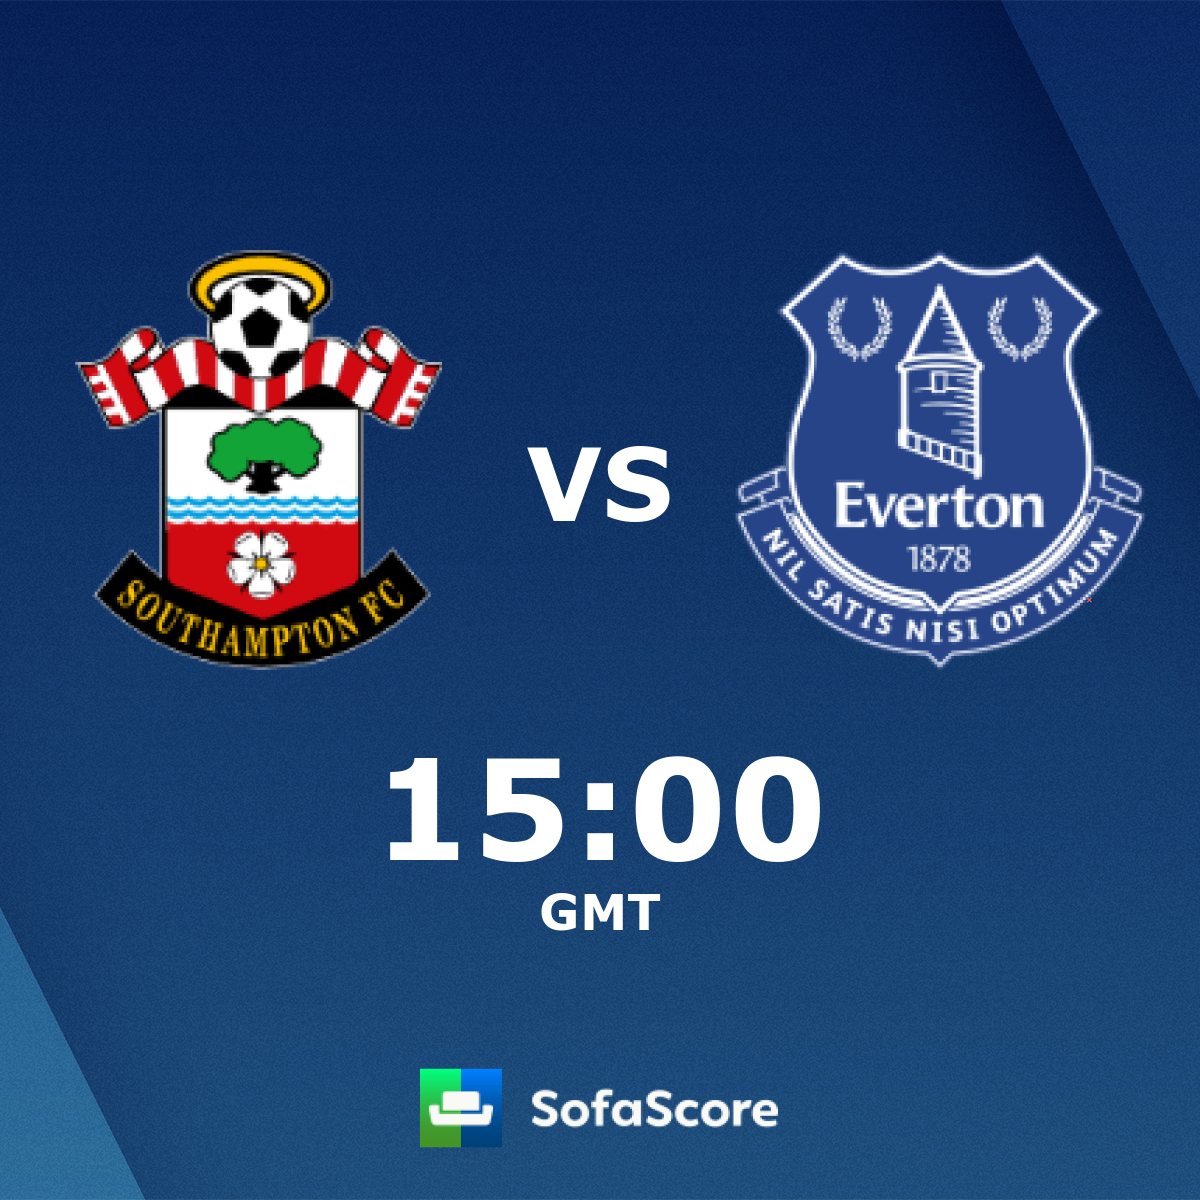 Southampton Everton live score, video stream and H2H results